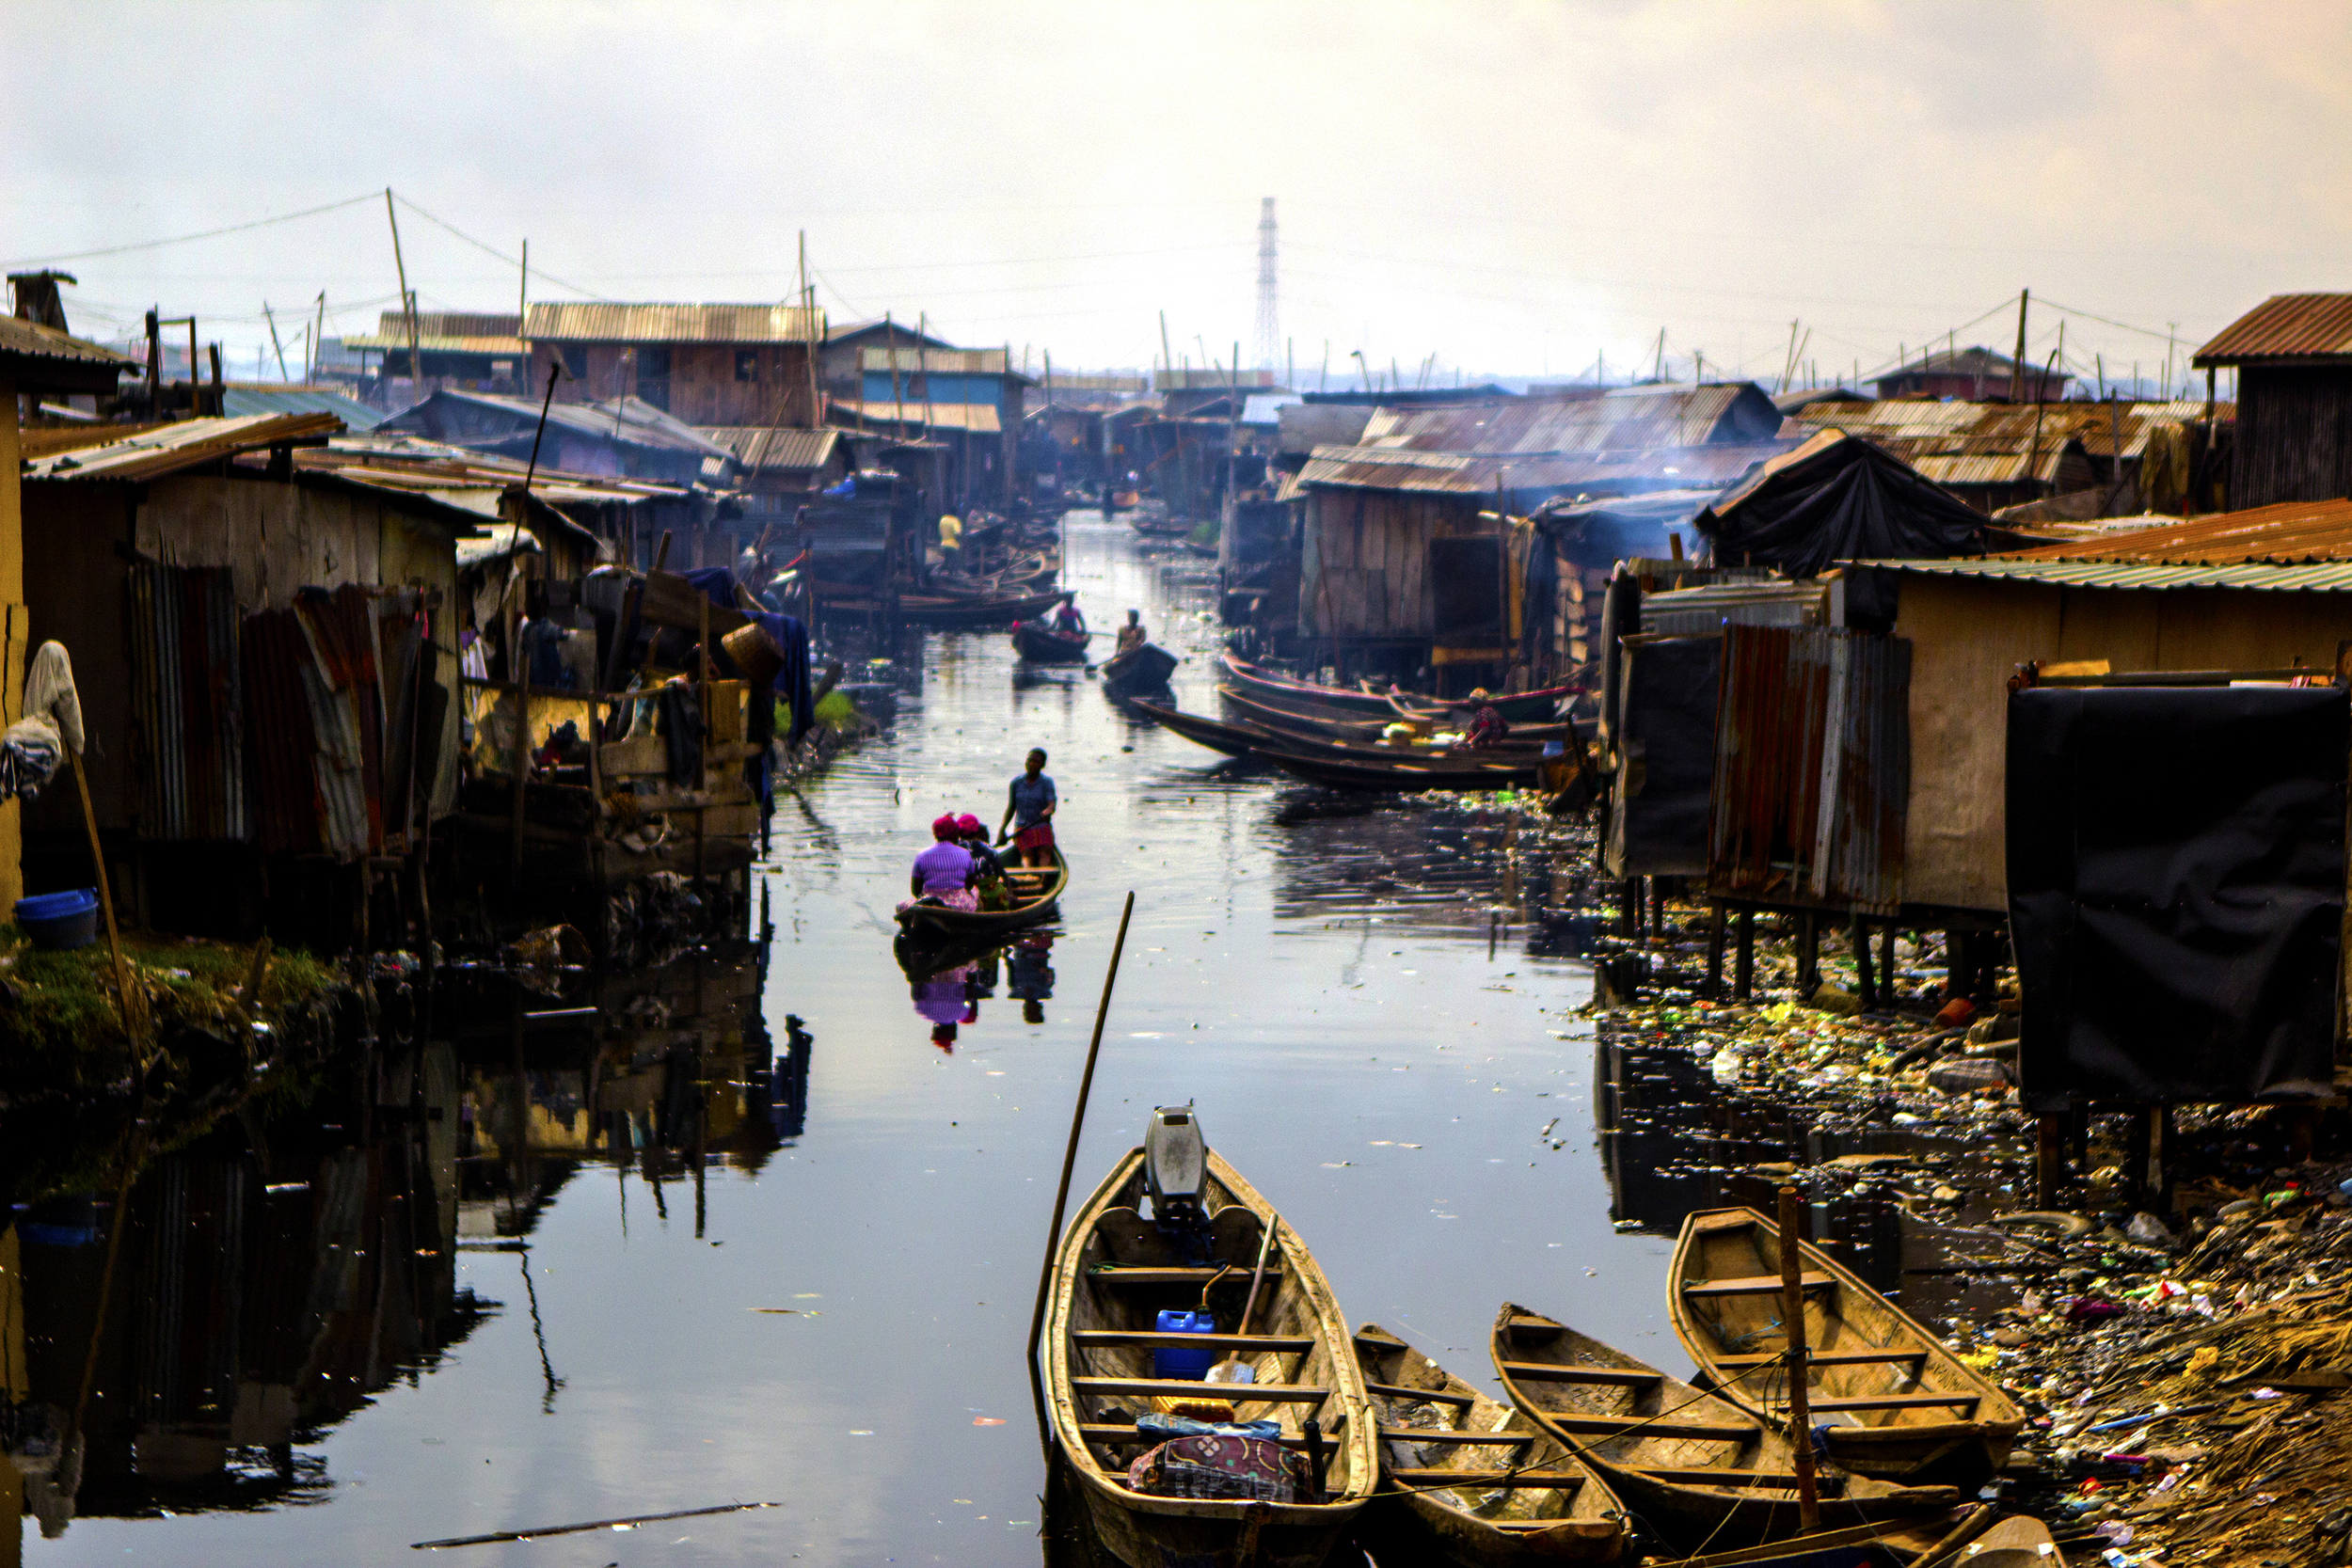 Lagos, Nigeria. Feb. 26, 2015. The floating slum of Makoko is a low-income coastal community in Lagos. The vast majority of its residents are fishermen who often struggle with unemployment.